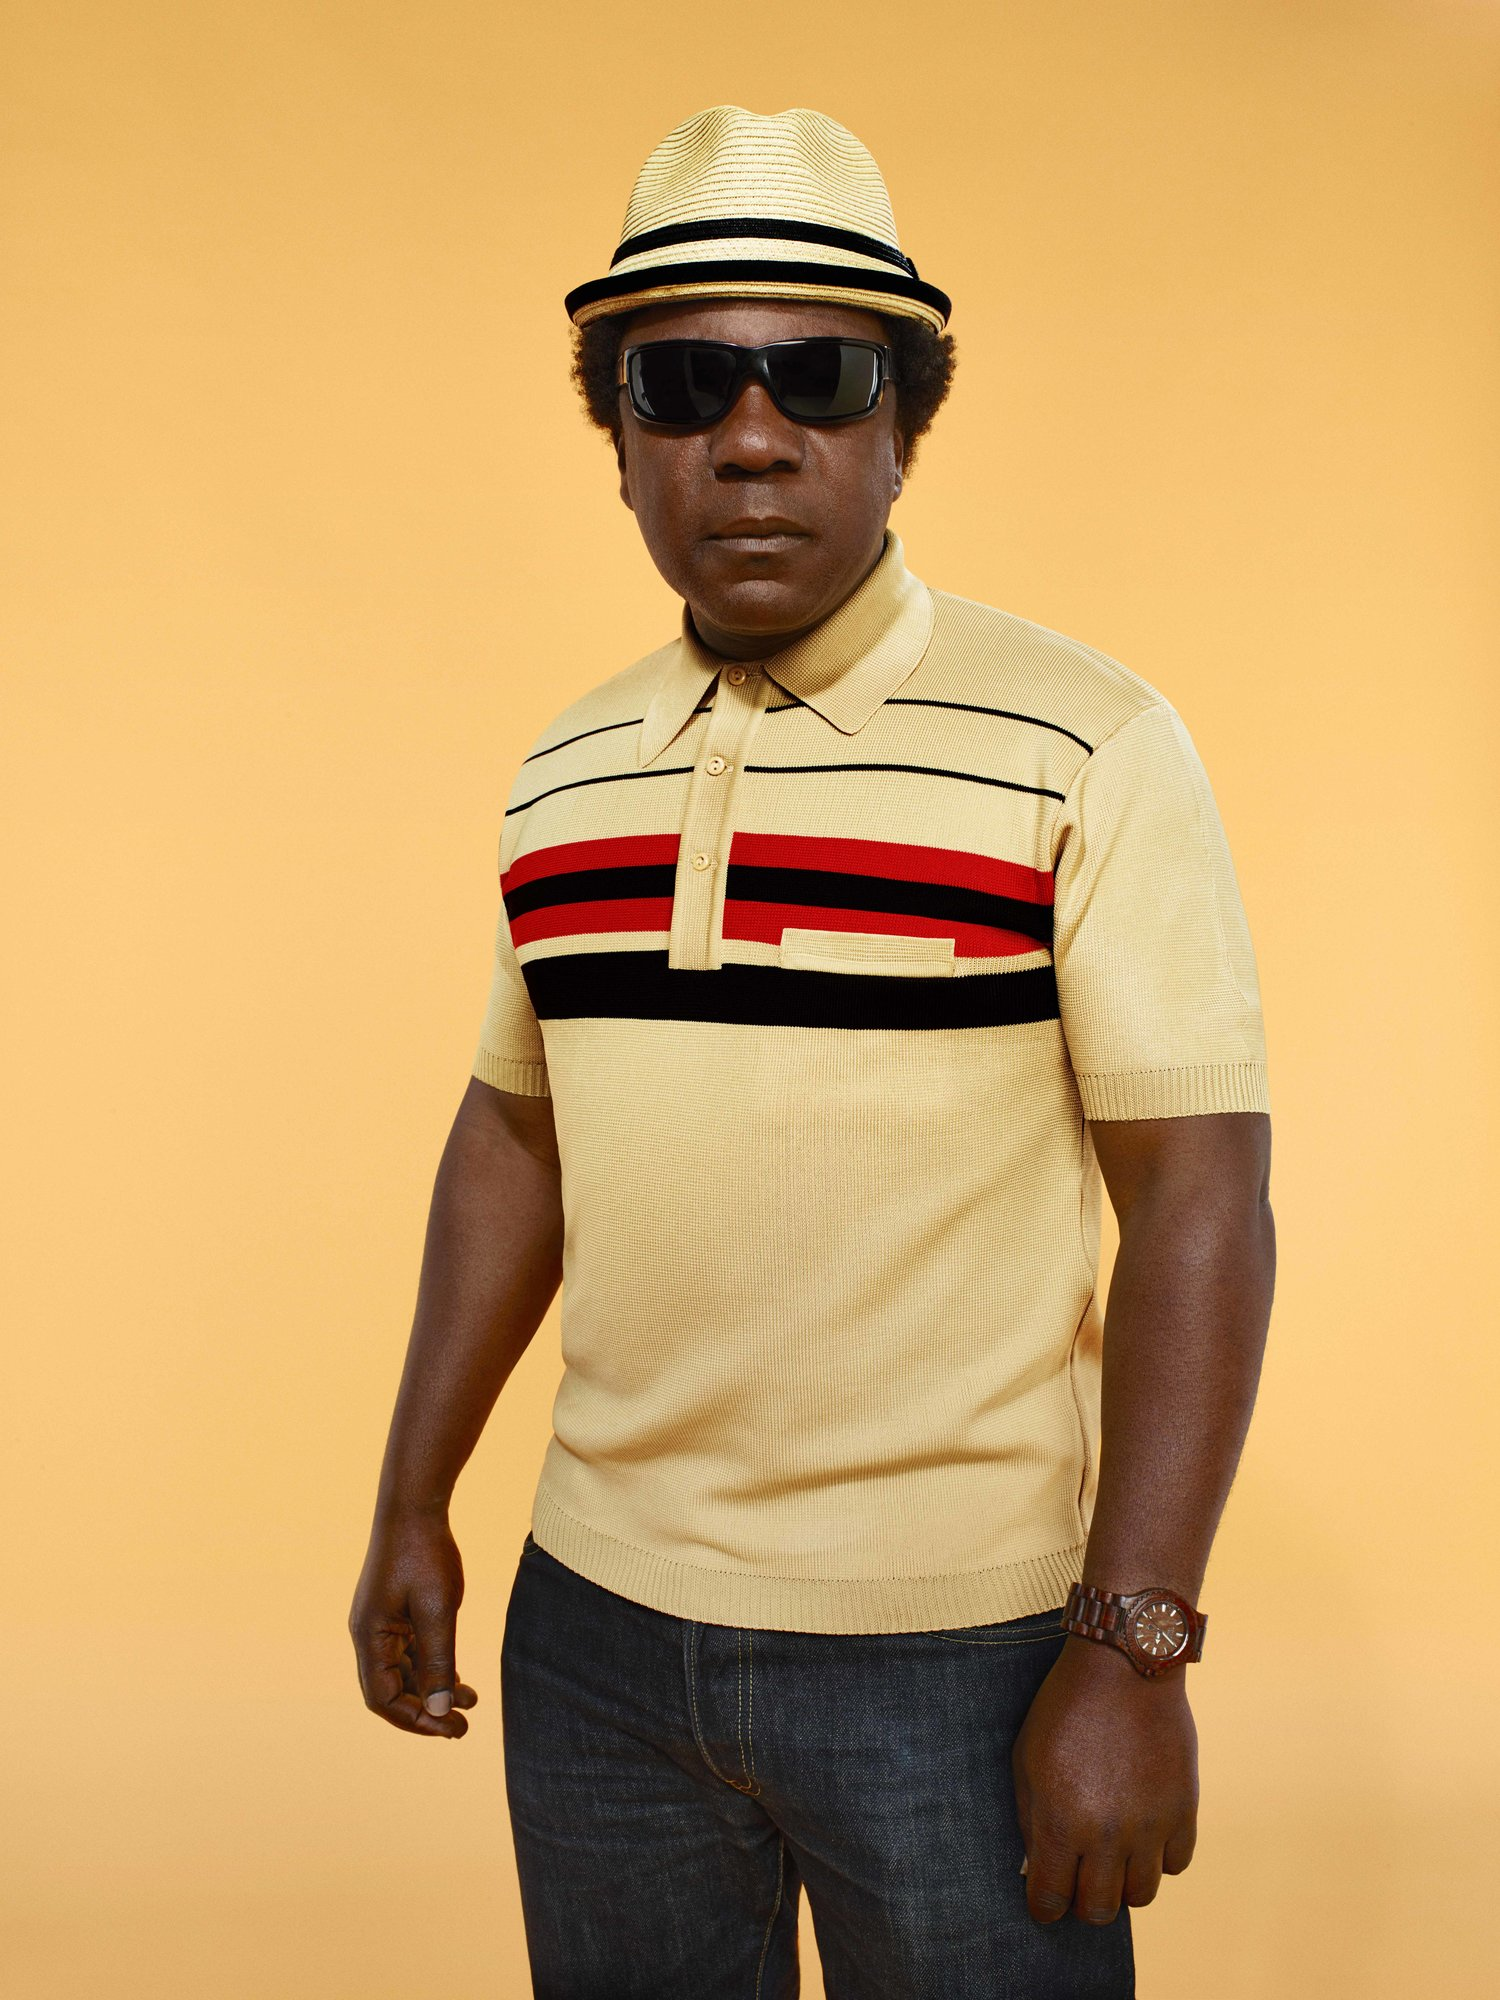 739e8cd126e74 Co-founder of the legendary Good Times Sound System and renowned London  dance music station KISS FM